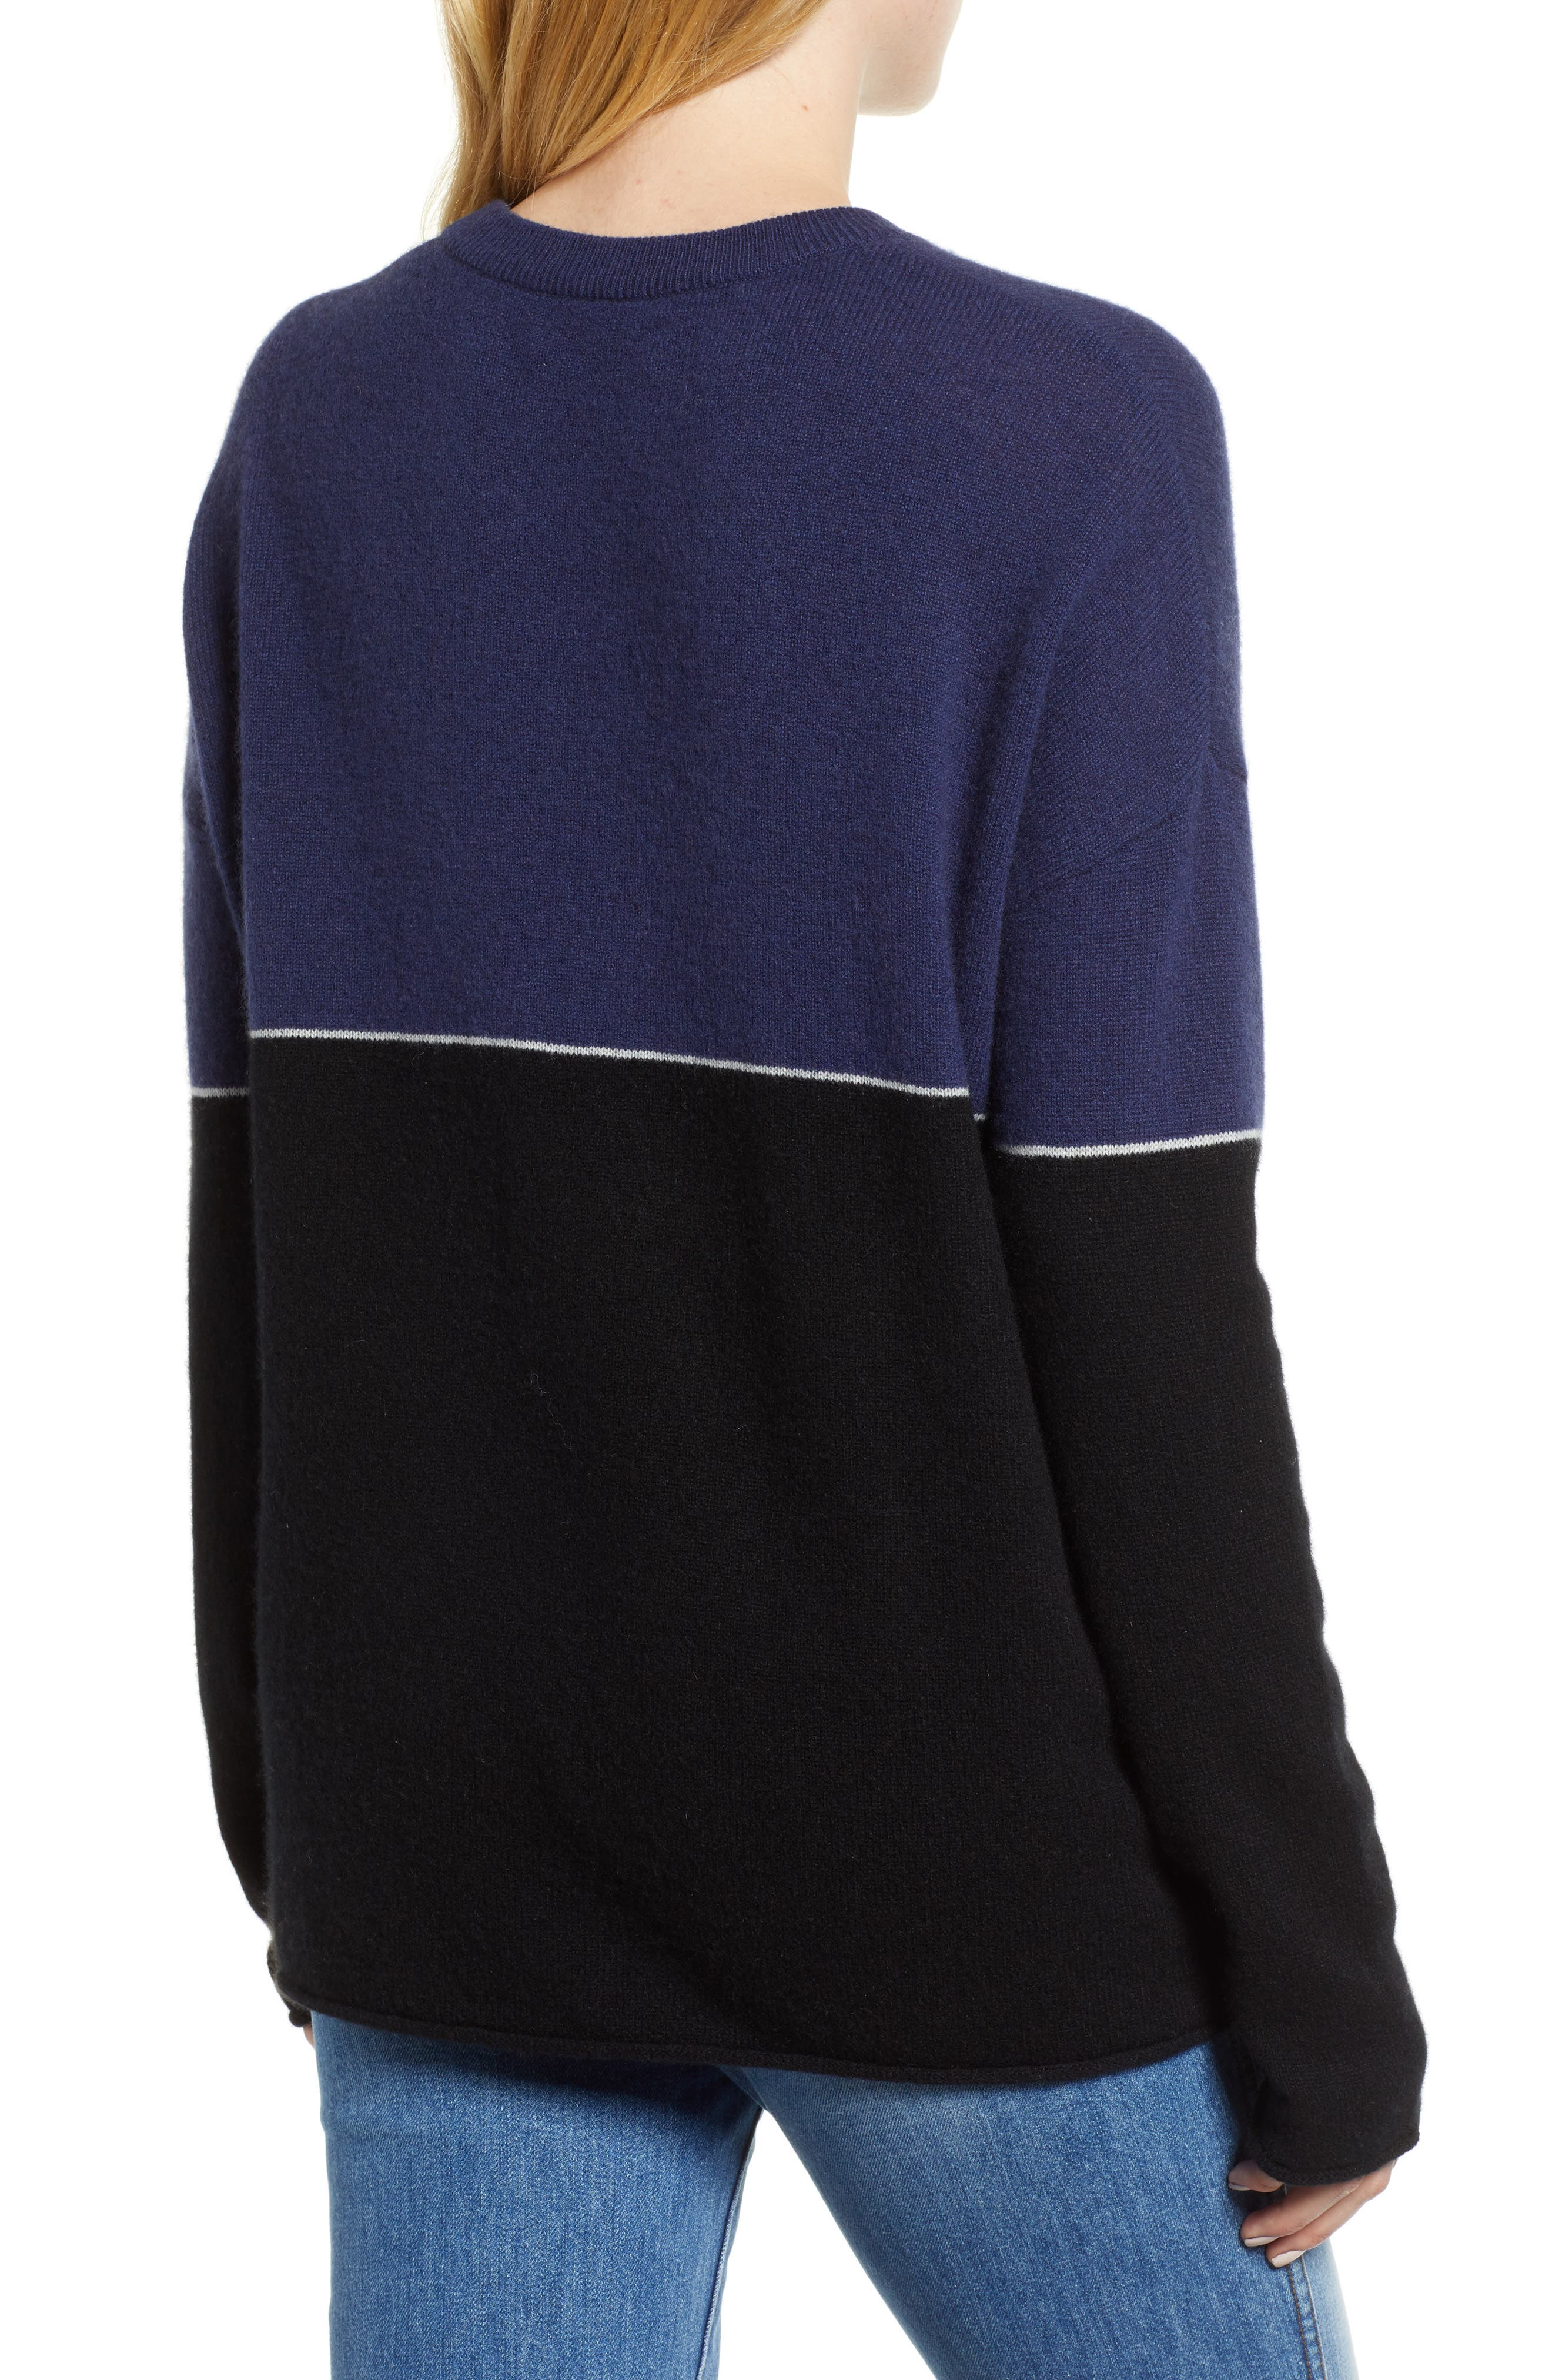 Cashmere Colorblock Sweater,                             Alternate thumbnail 2, color,                             001